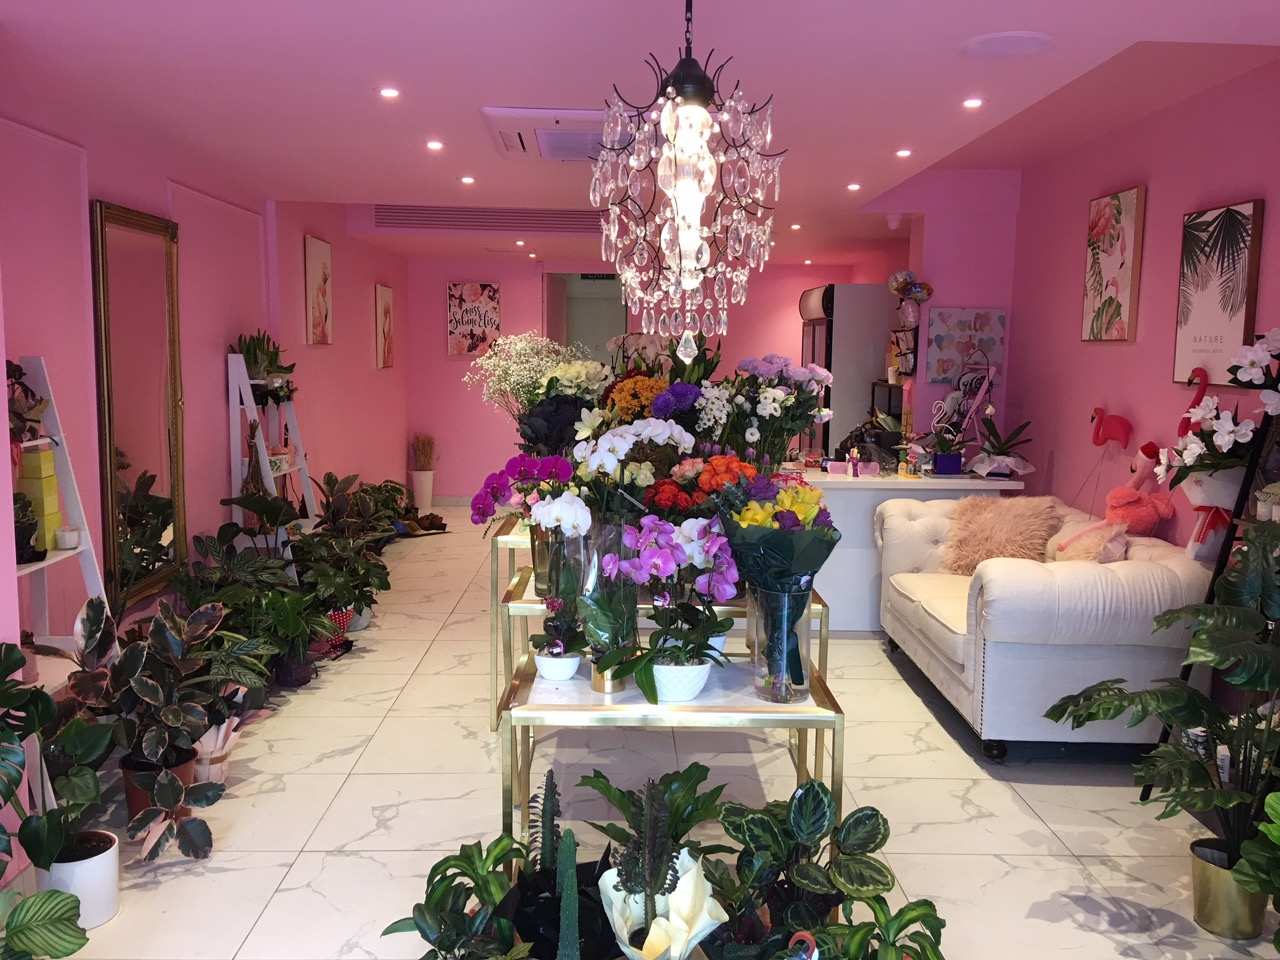 Florist Business For Sale South Yarra